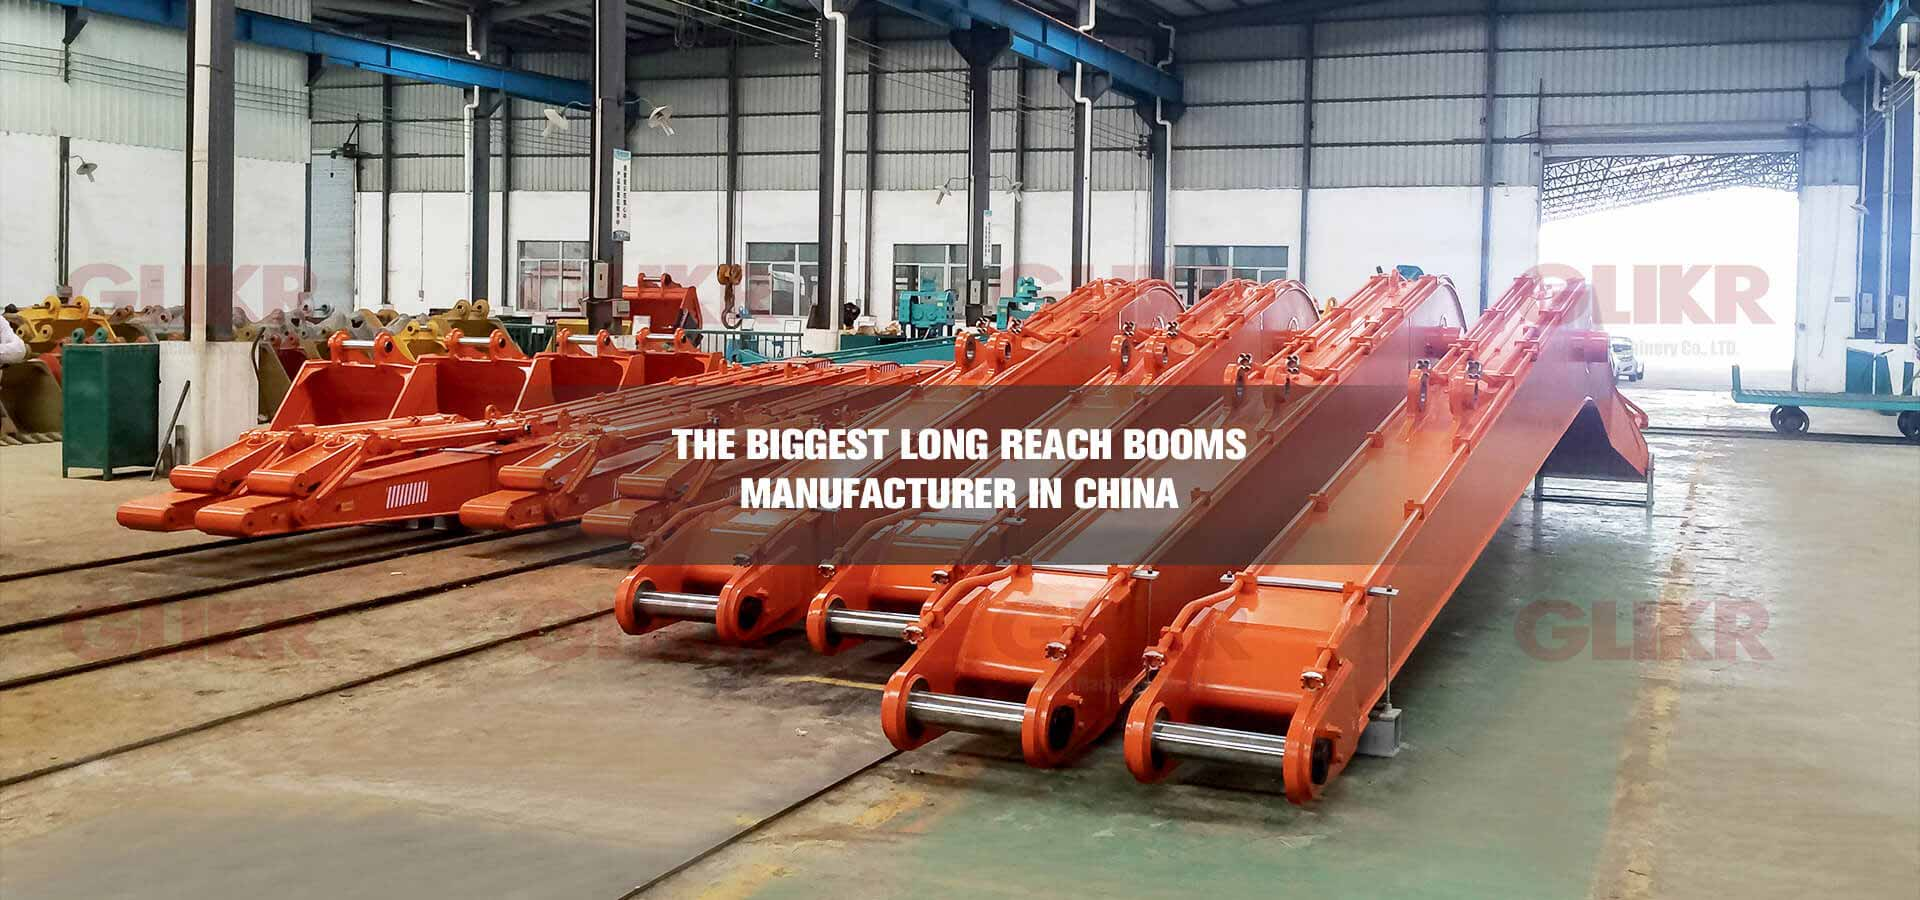 THE BIGGEST LONG REACH BOOMS MANUFACTURER IN CHINA!